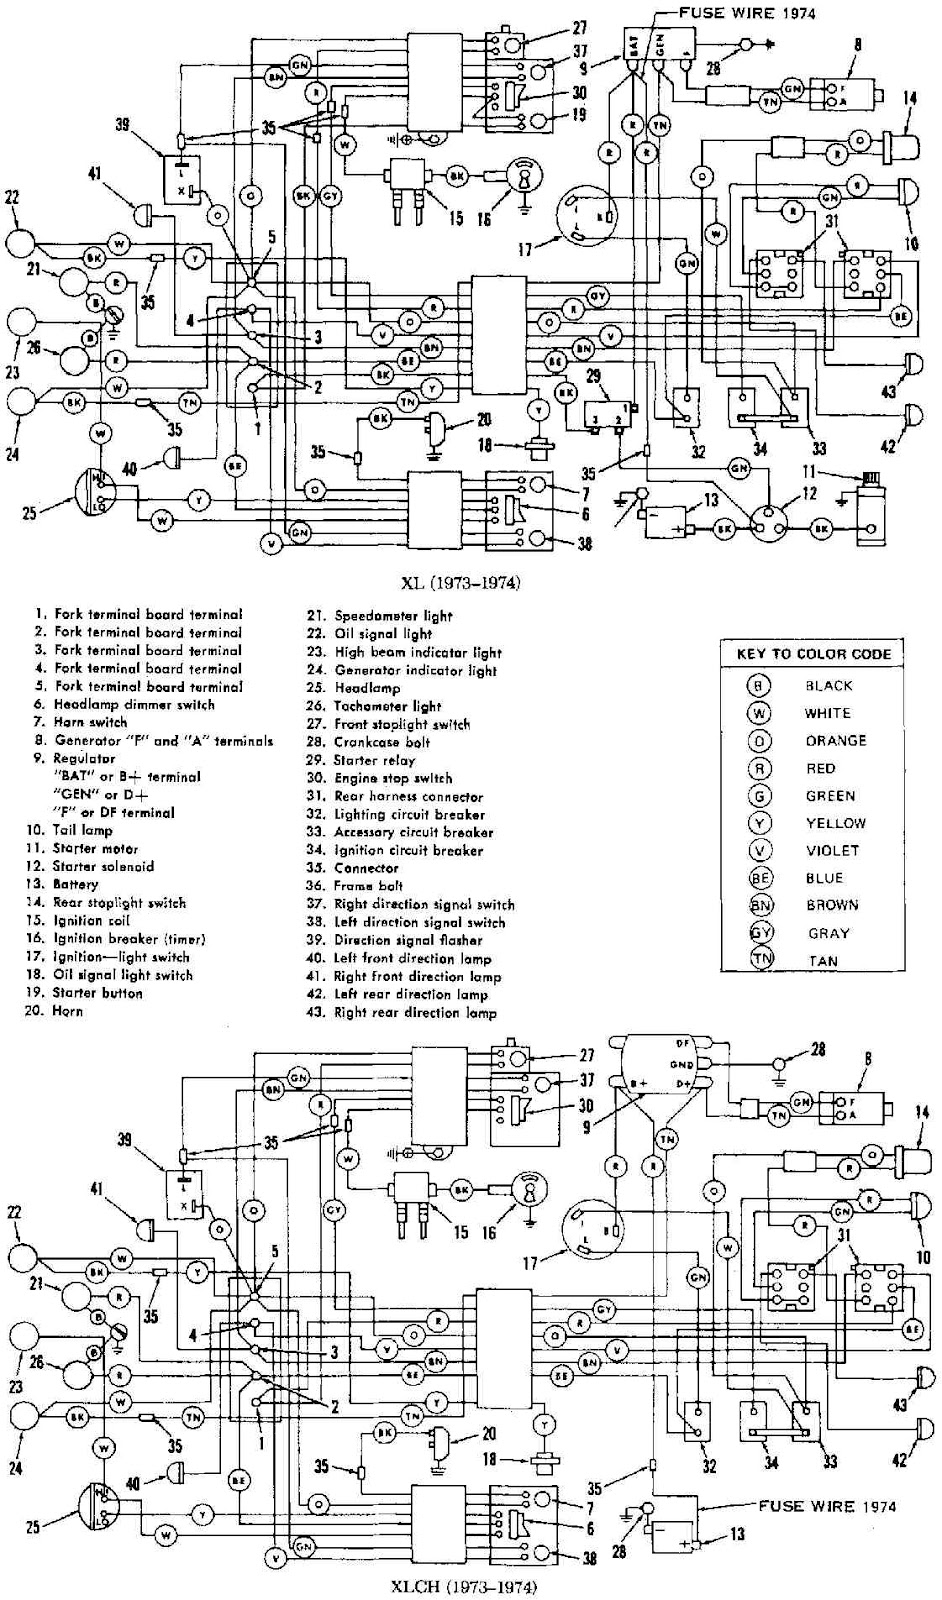 chevy hei distributor wiring diagram chevy discover your wiring harley dyna electrical diagram gm power window switch pin wiring